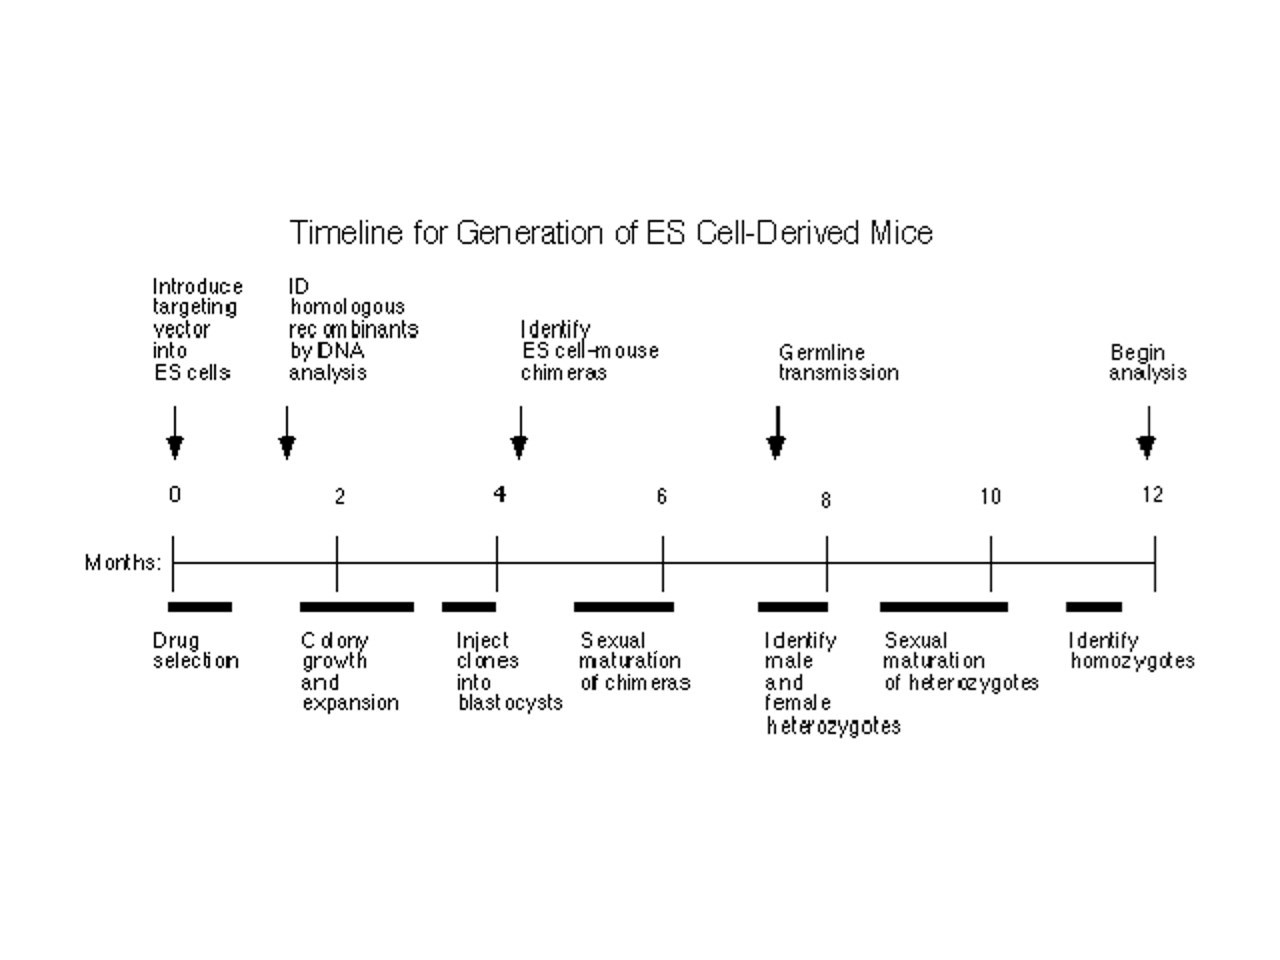 Timeline for generation of ES cell-devided mice